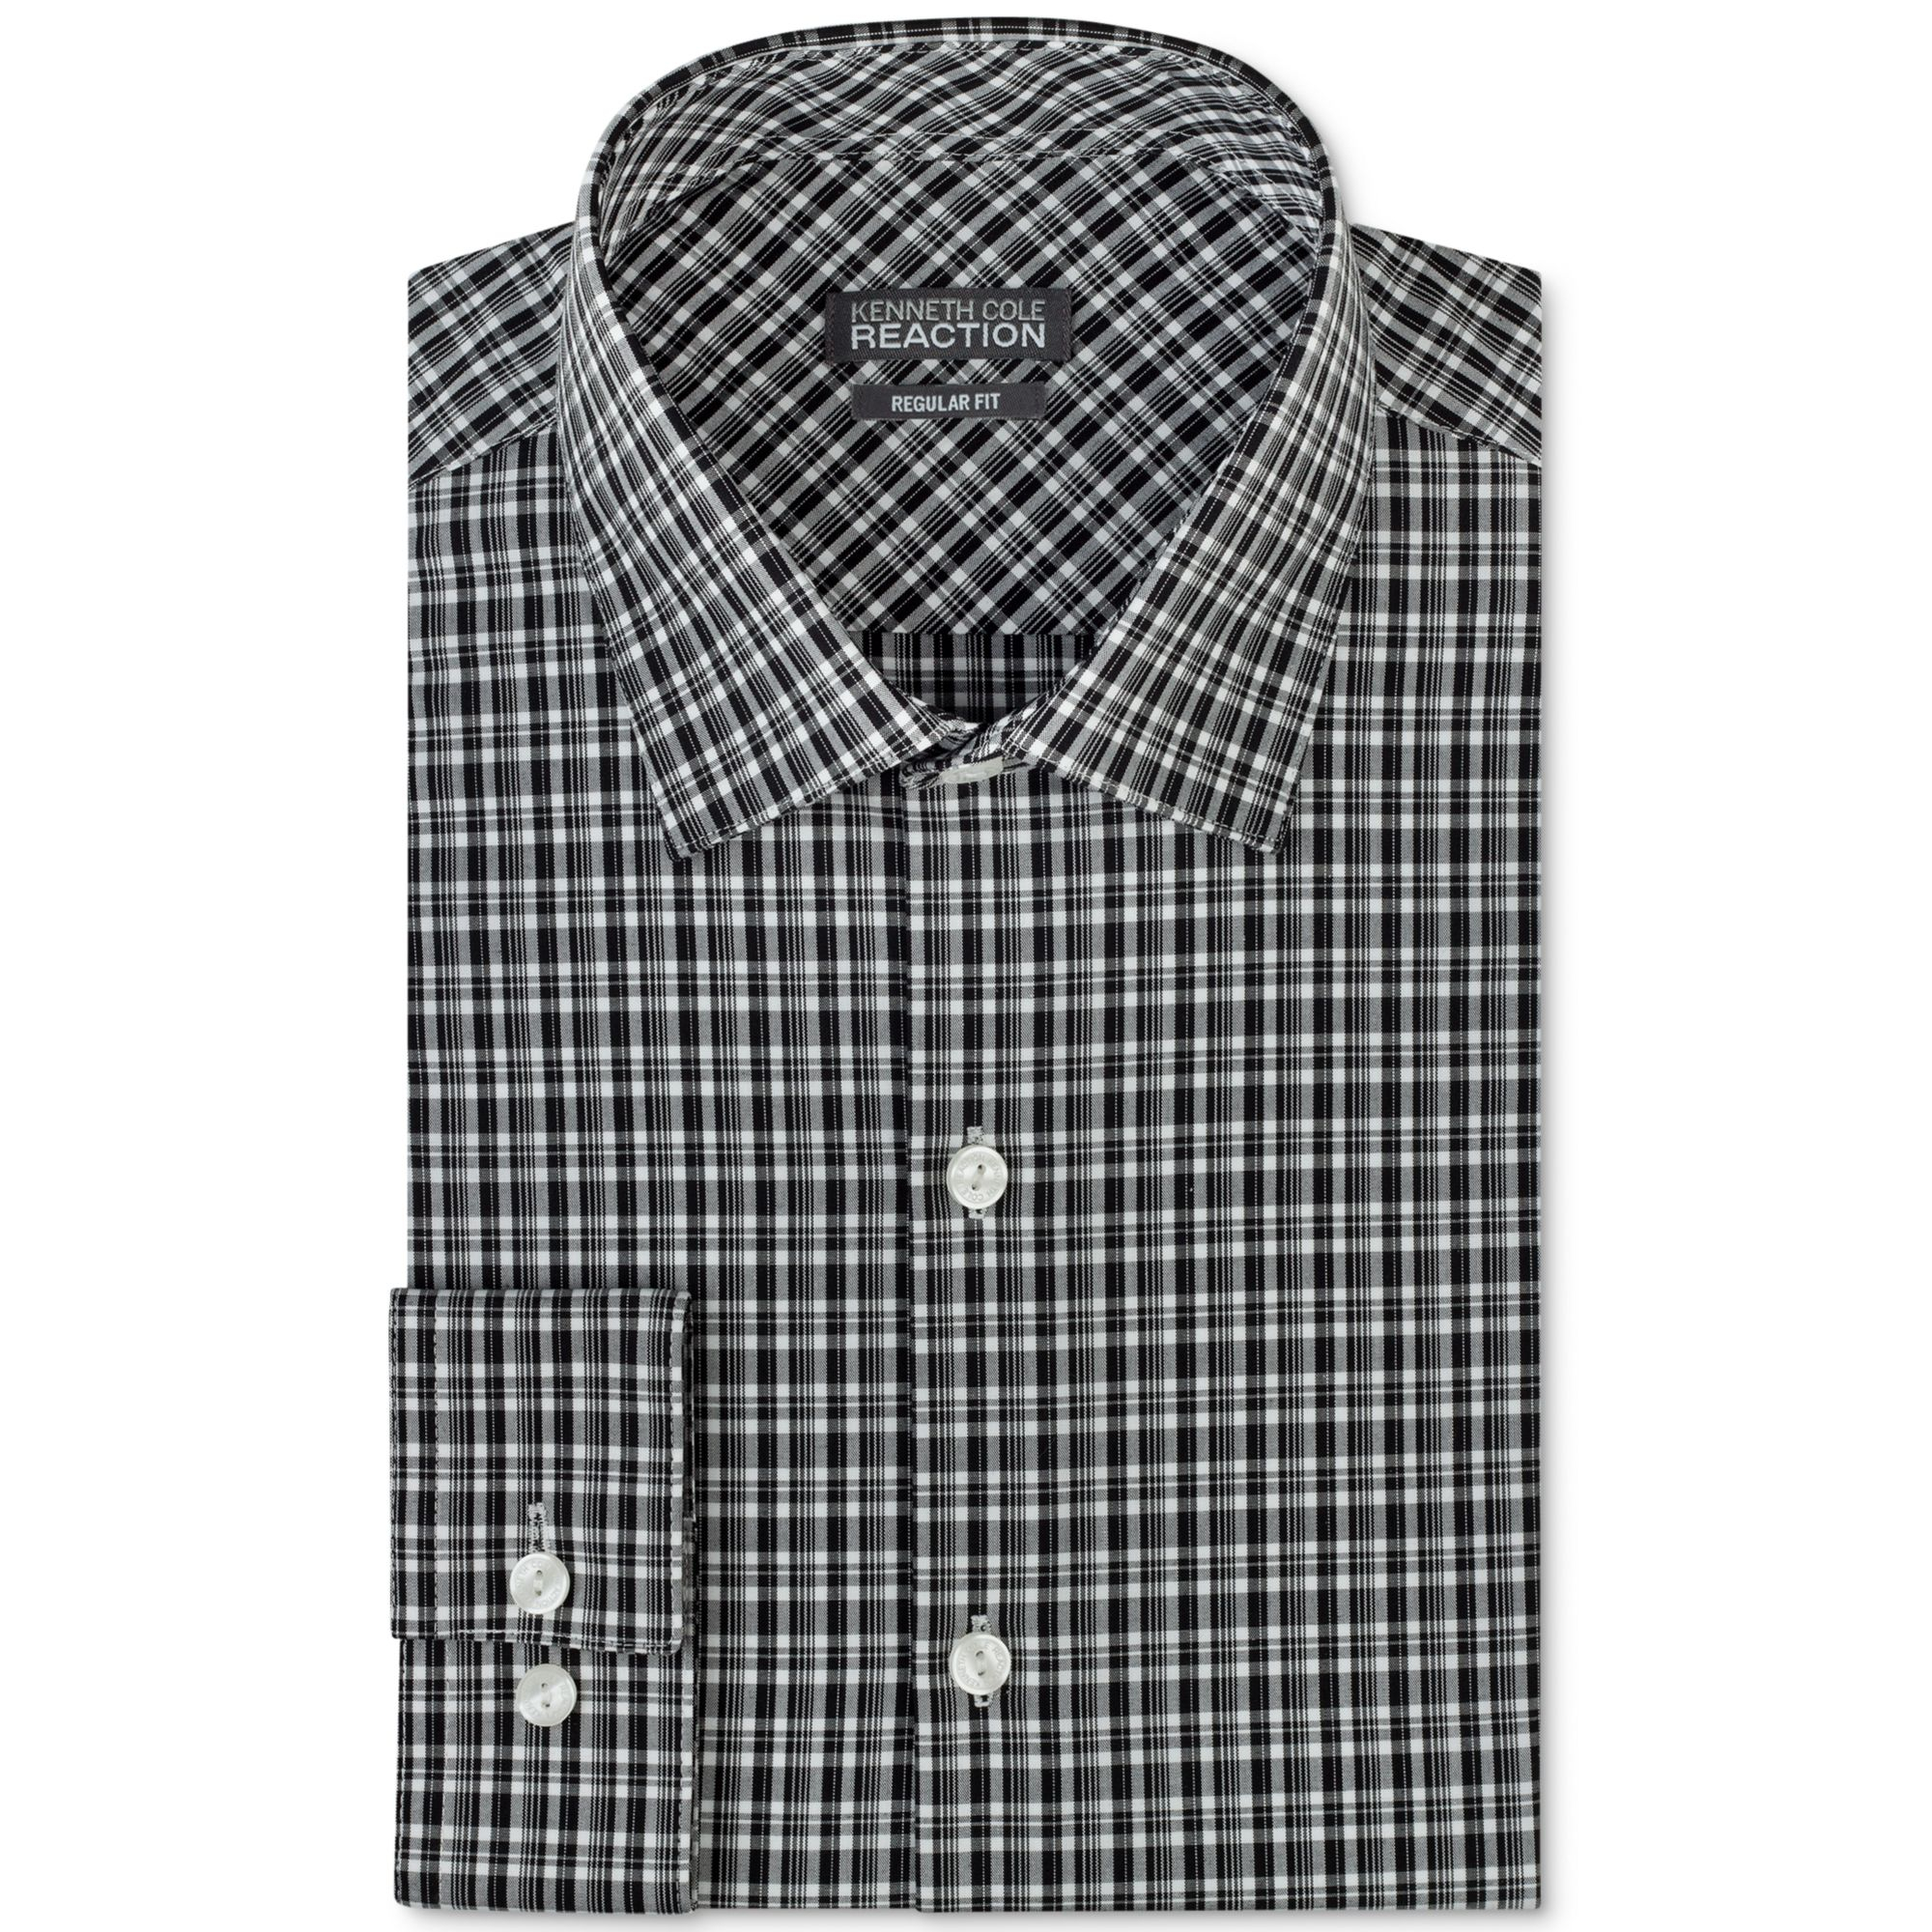 kenneth cole reaction black and white plaid dress shirt in